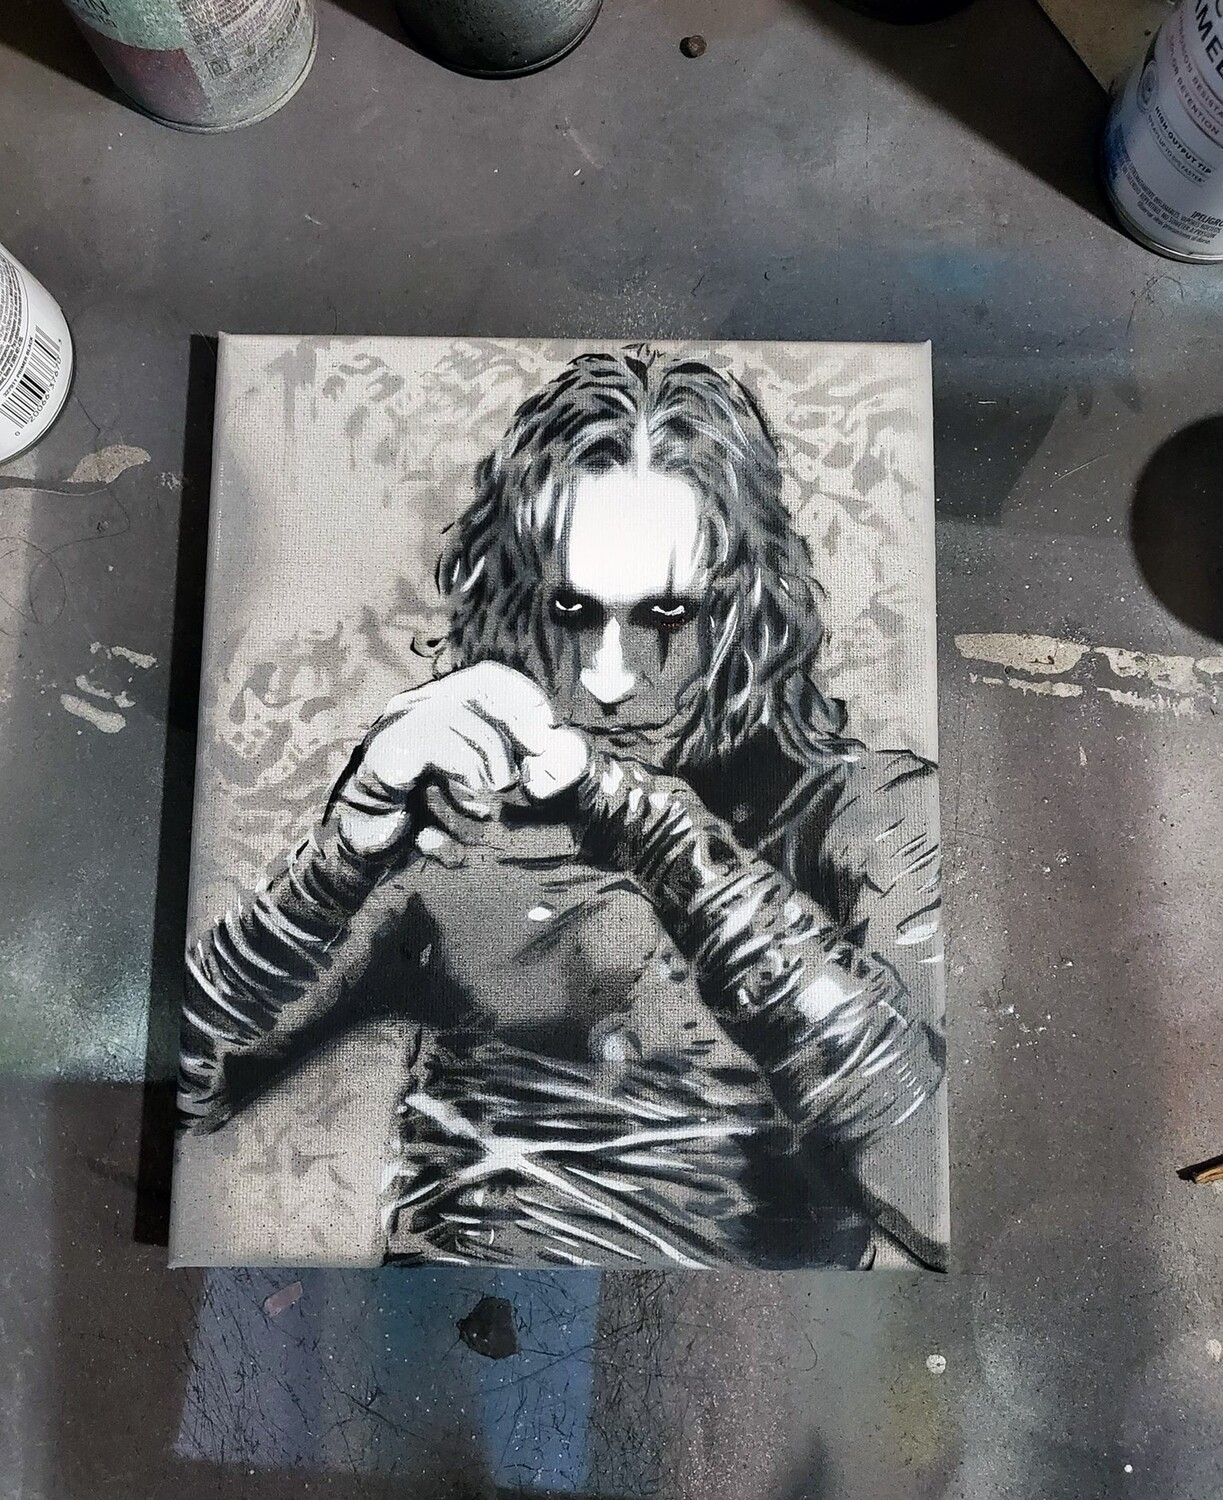 Brandon Lee's The Crow